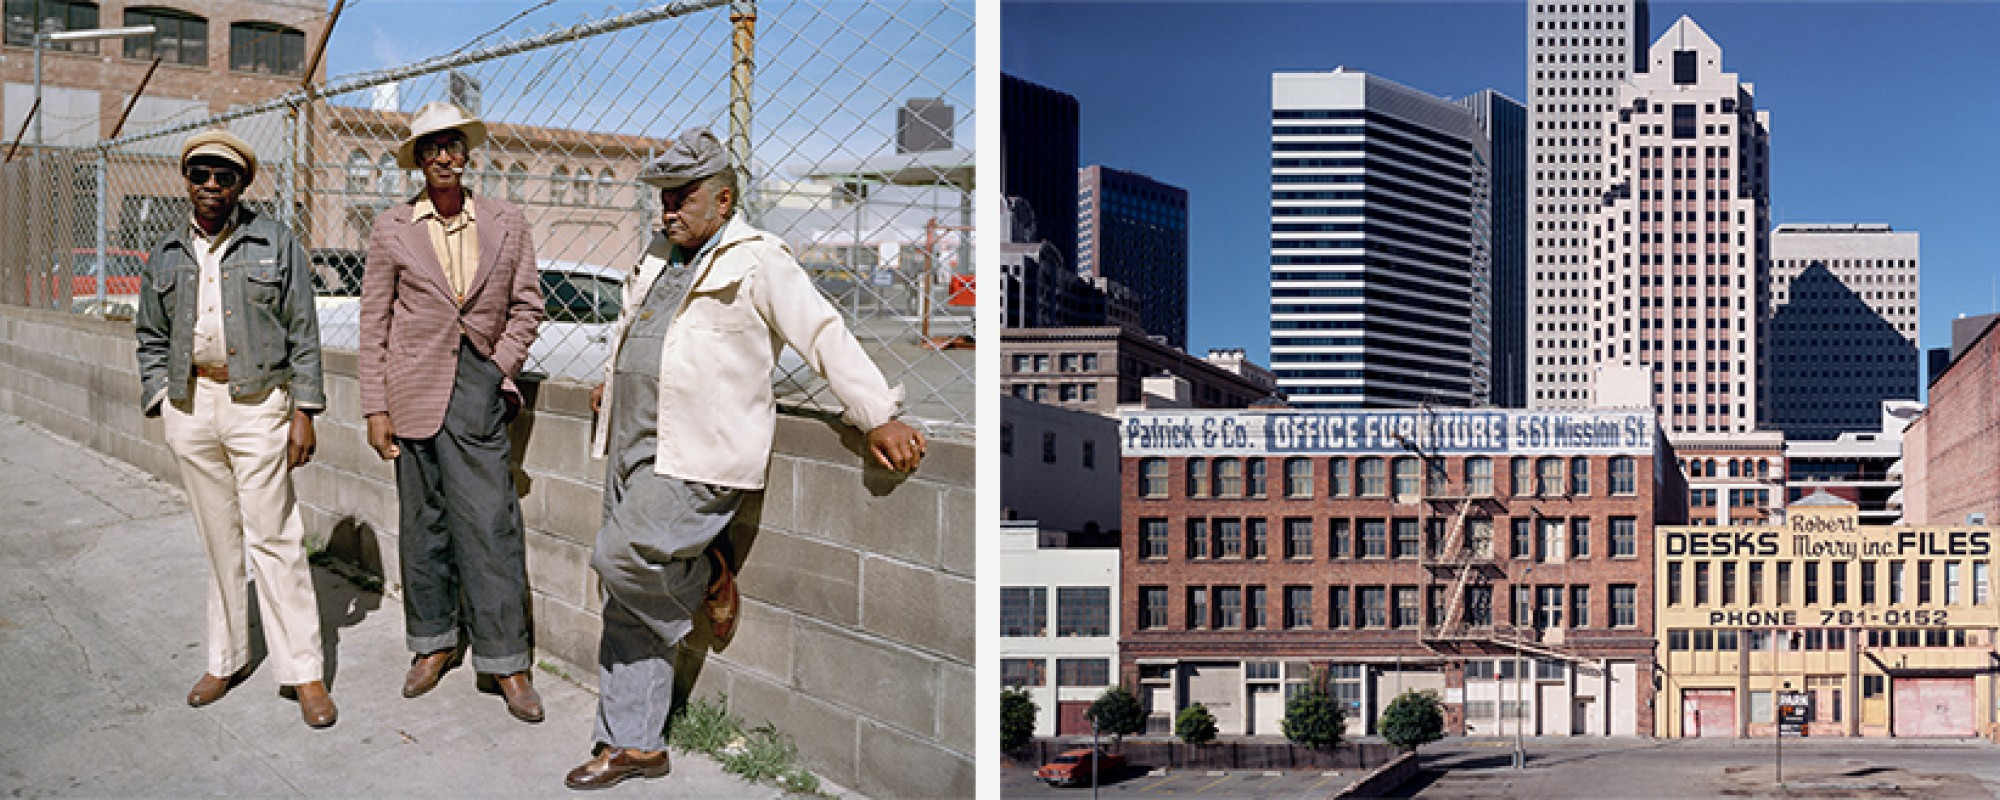 Janet Delaney photographs of neighbors at Folsom Street and of view of the Financial District